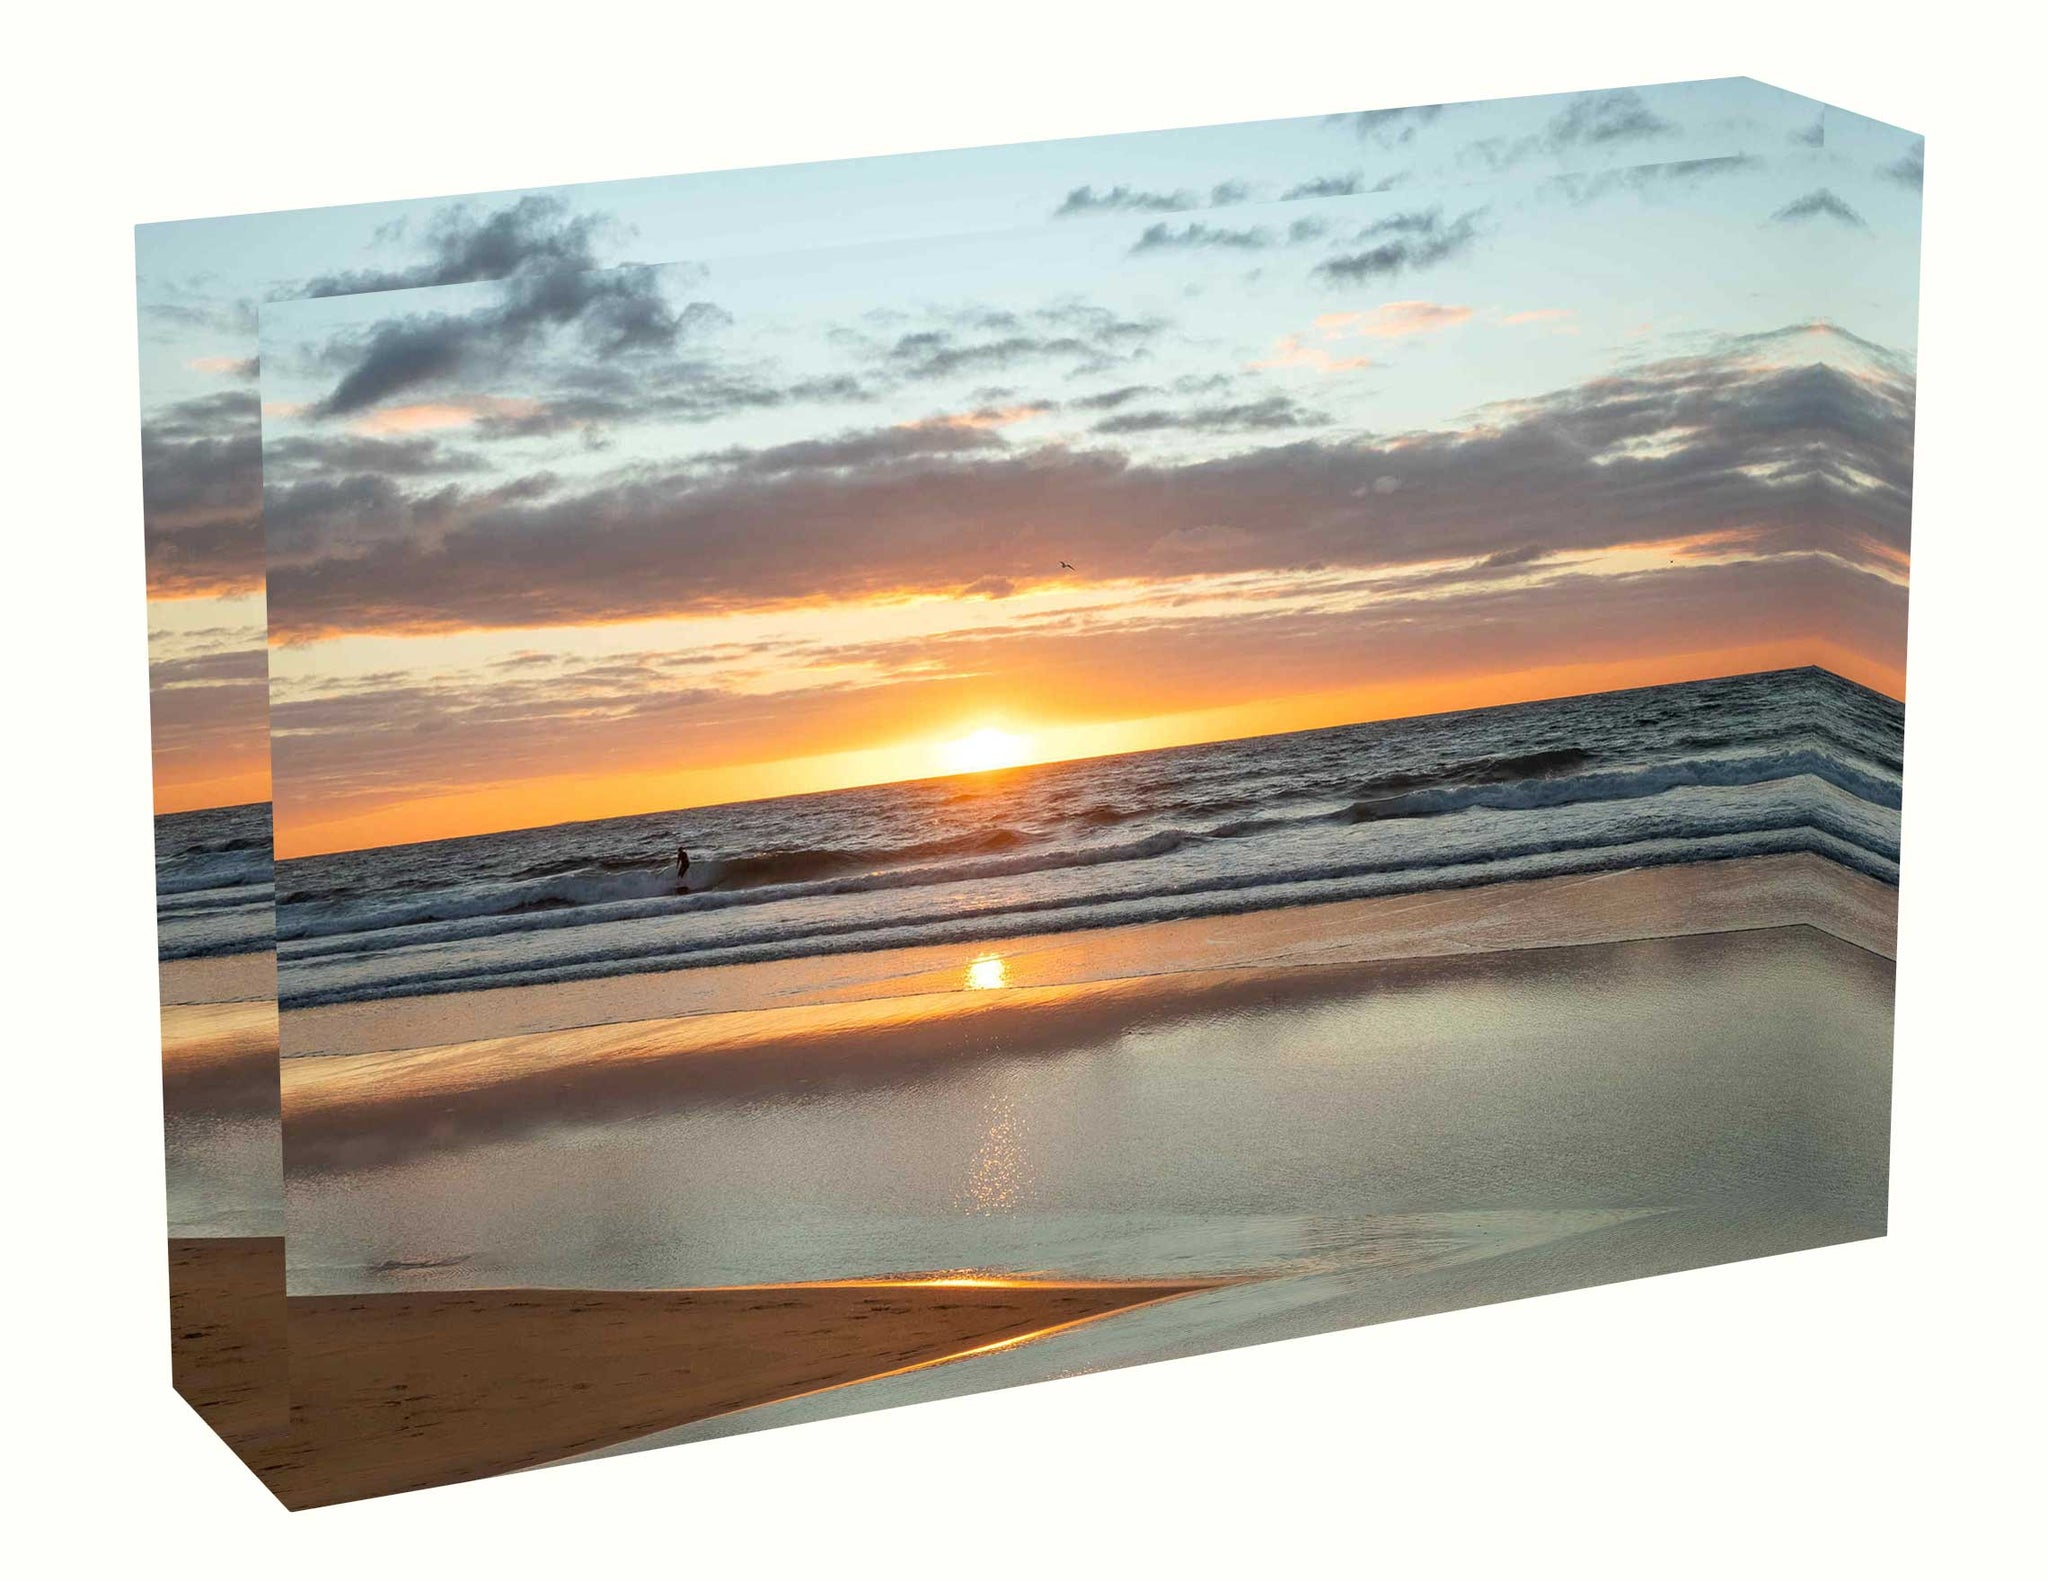 Acrylic block Sunrise photo from 28th April 2020 at Manly beach, Sydney